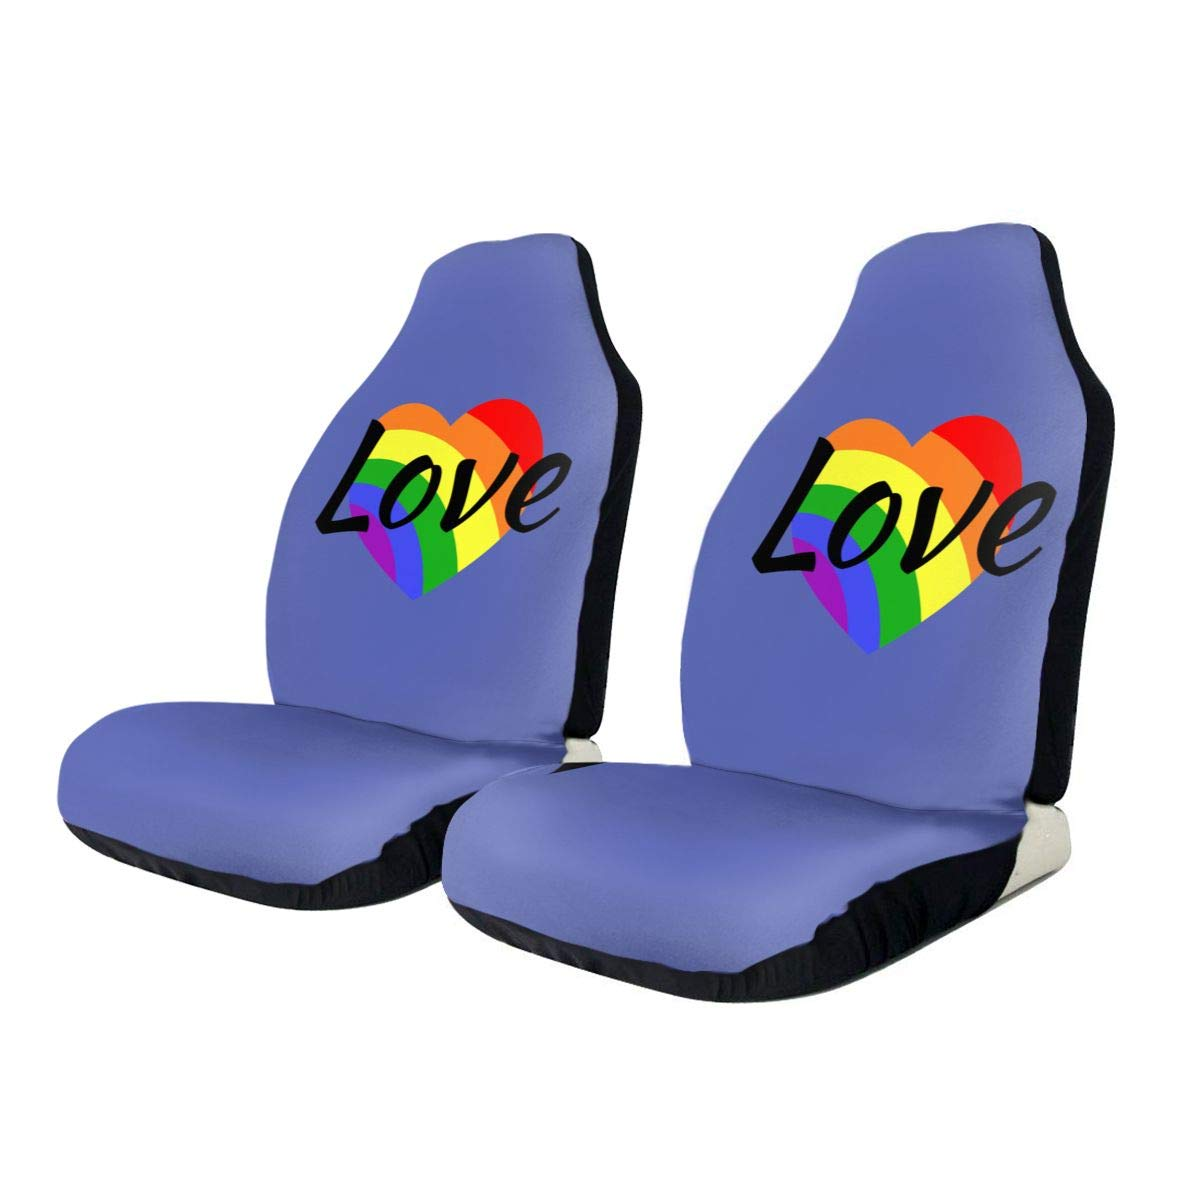 Love LGBT Rainbow Car Seat Protector Car Seat Cover Protector Auto Car Seat Protectors Non-Slip Automotive Seat Protector Universal for Car SUV Trucks Minivan